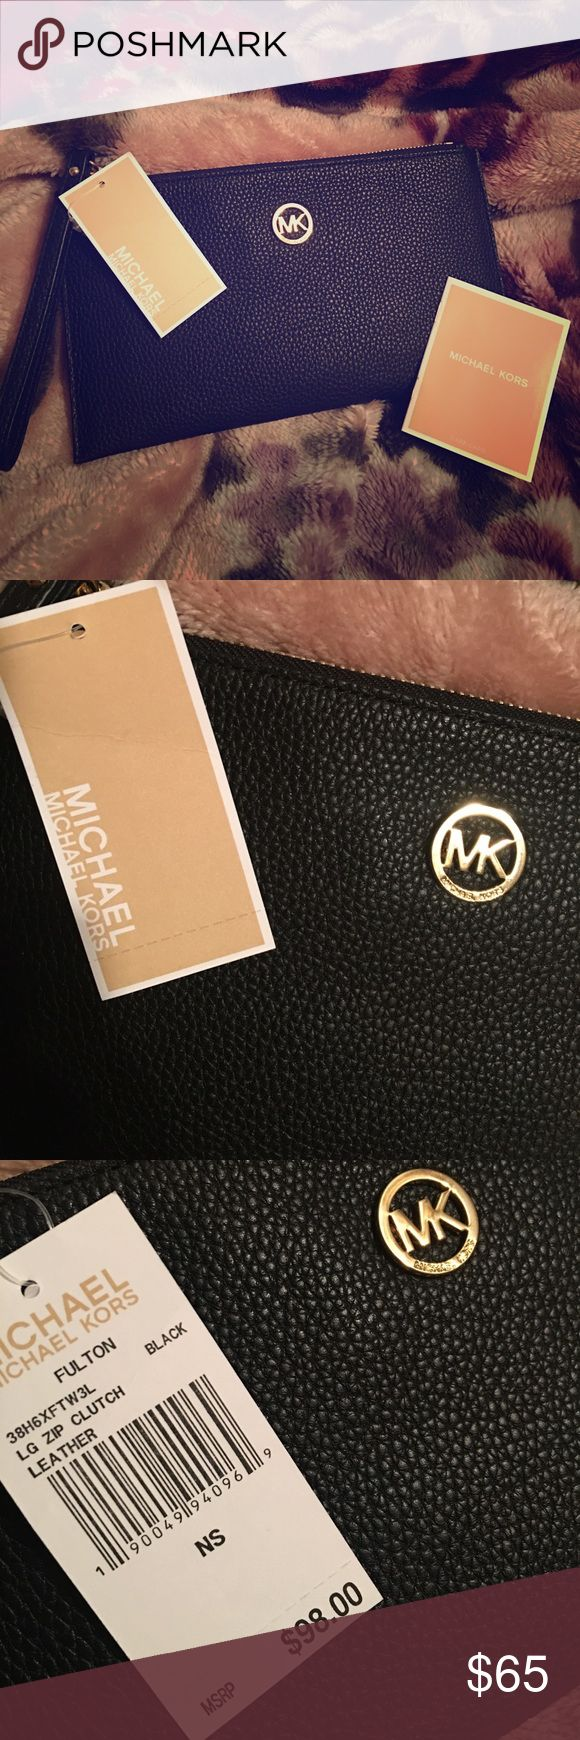 Michael Kirs Fulton Clutch NWT Michel Kors Fulton Lg Zip Clutch......Black Leather.......Retail Value $98......Gold Hardware.....6 card slots......Wristlet Strap Michael Kors Bags Clutches & Wristlets